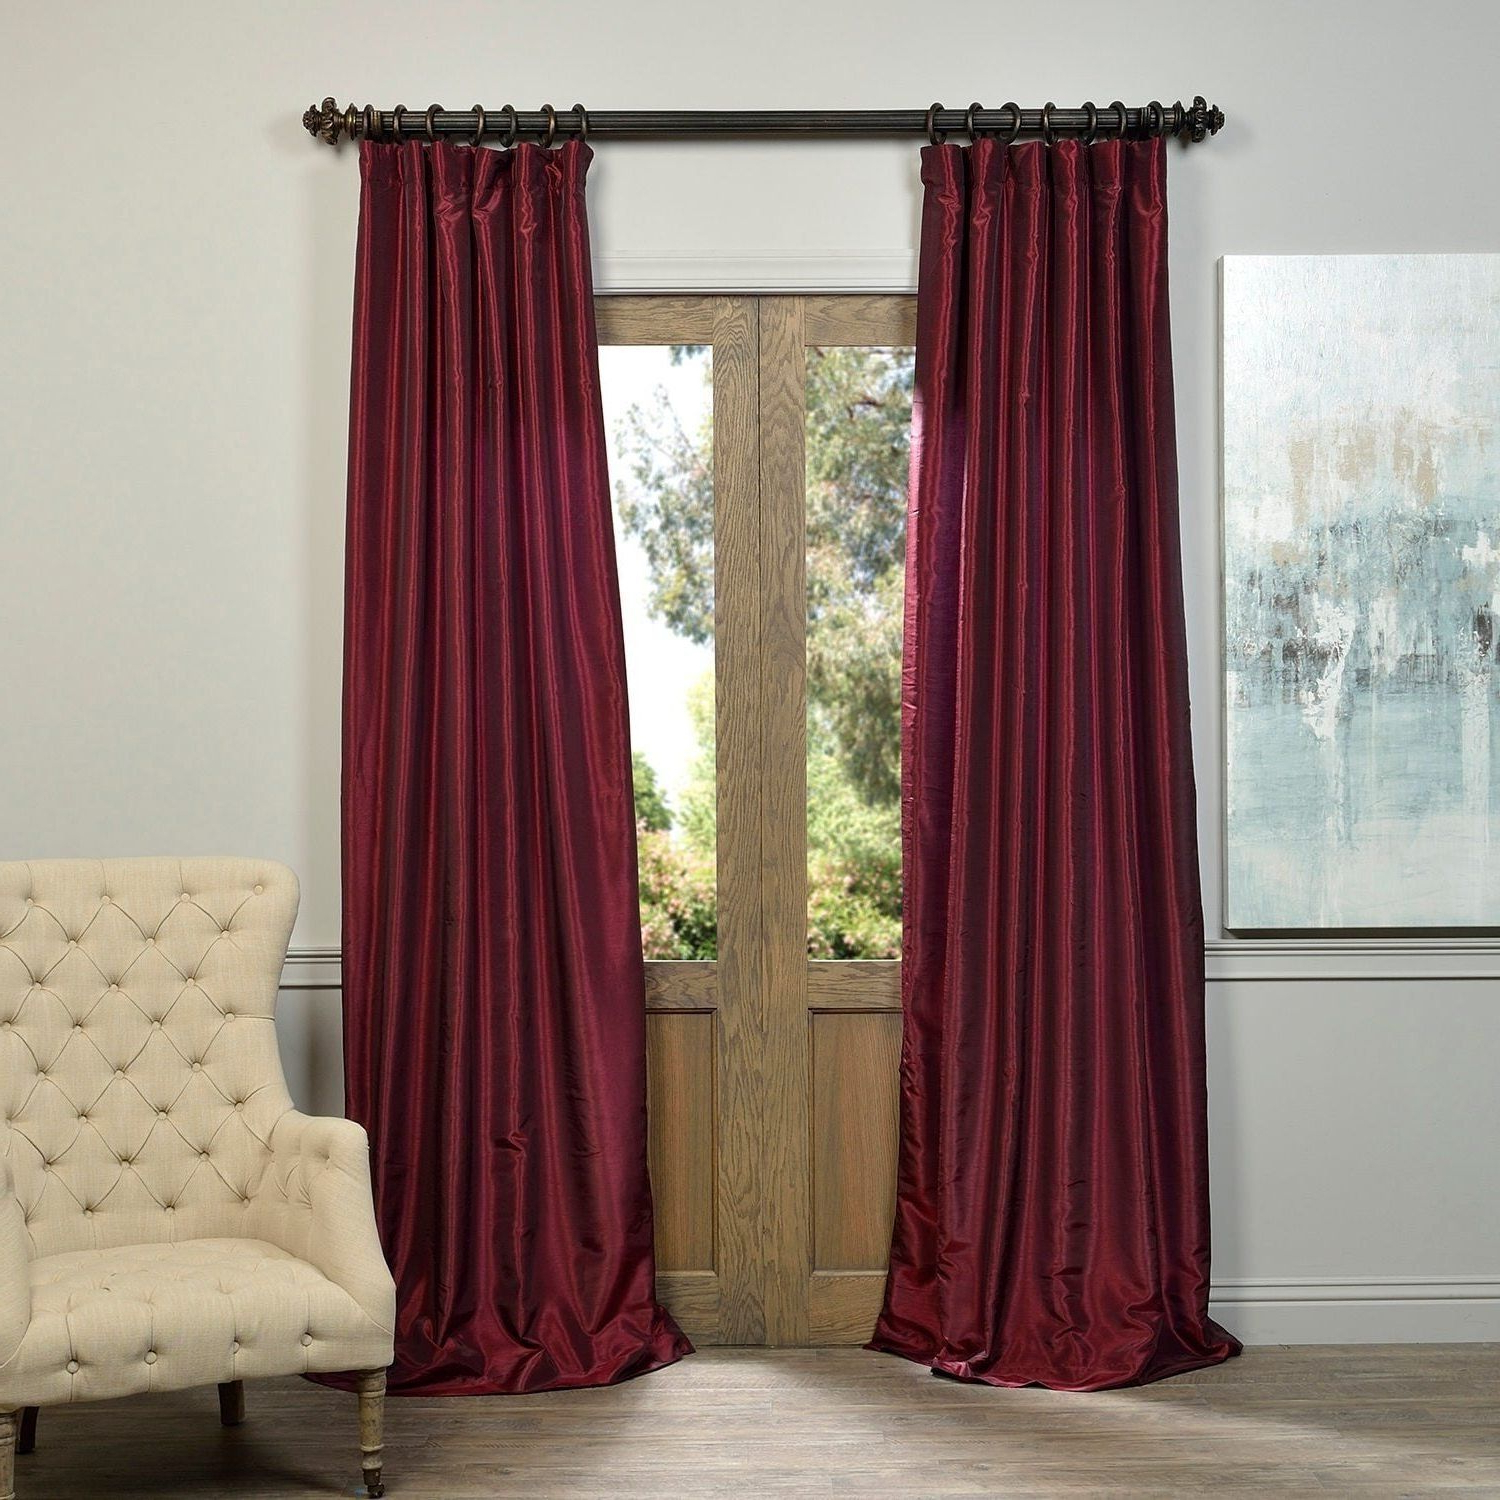 Vintage Textured Faux Dupioni Silk Curtain Panels Inside Fashionable 1 Piece 120 Inch Ruby Vintage Textured Faux Dupioni Silk (View 11 of 20)